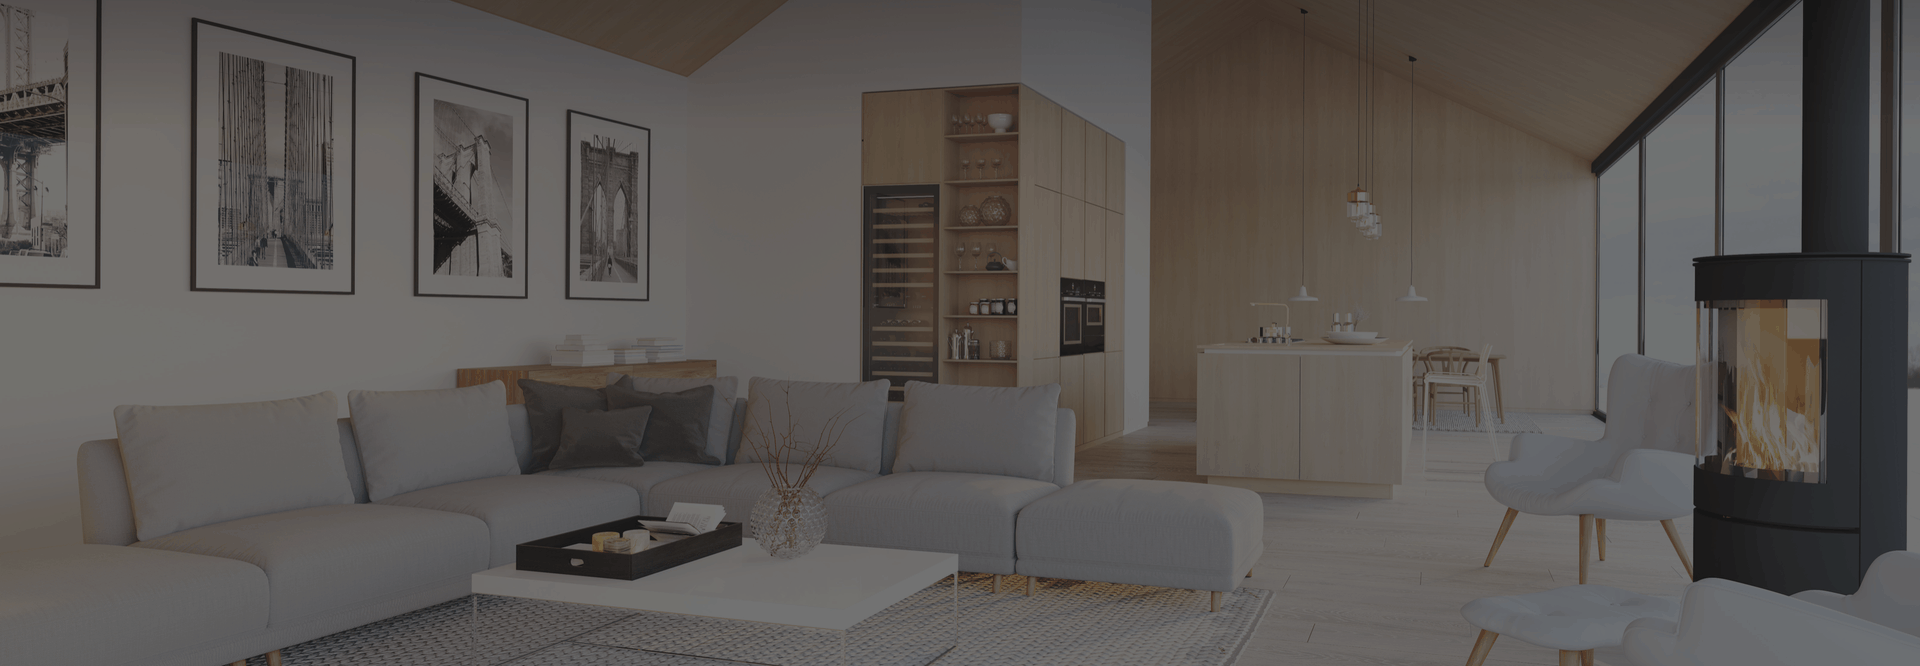 rendering of a modern living room with wood stove